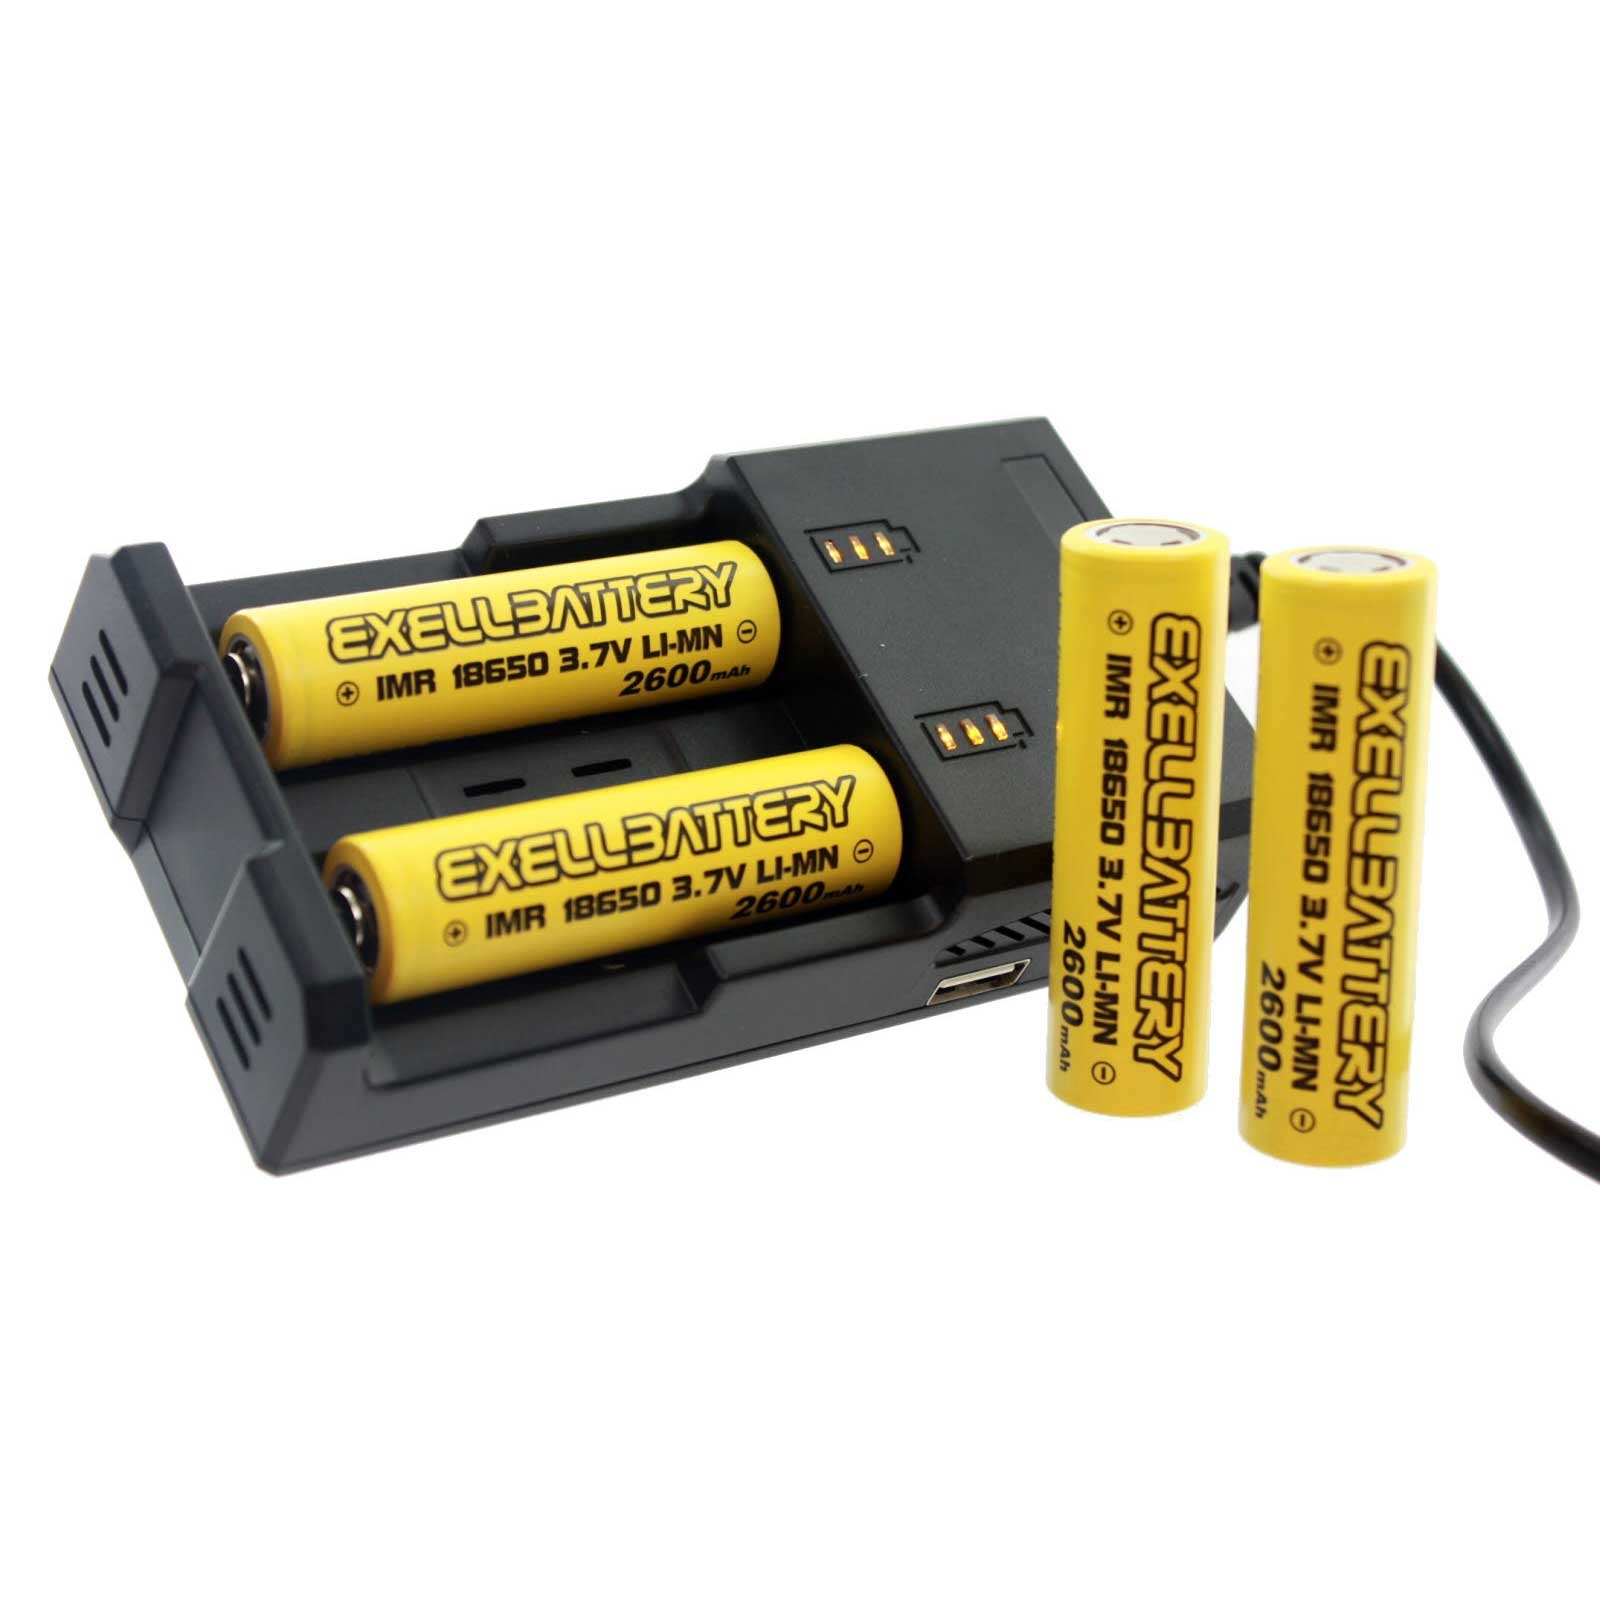 4 Pcs 3.7V 2600mAh Li-Ion 18650 IMR Rechargeable Battery and 2 Slot Charger